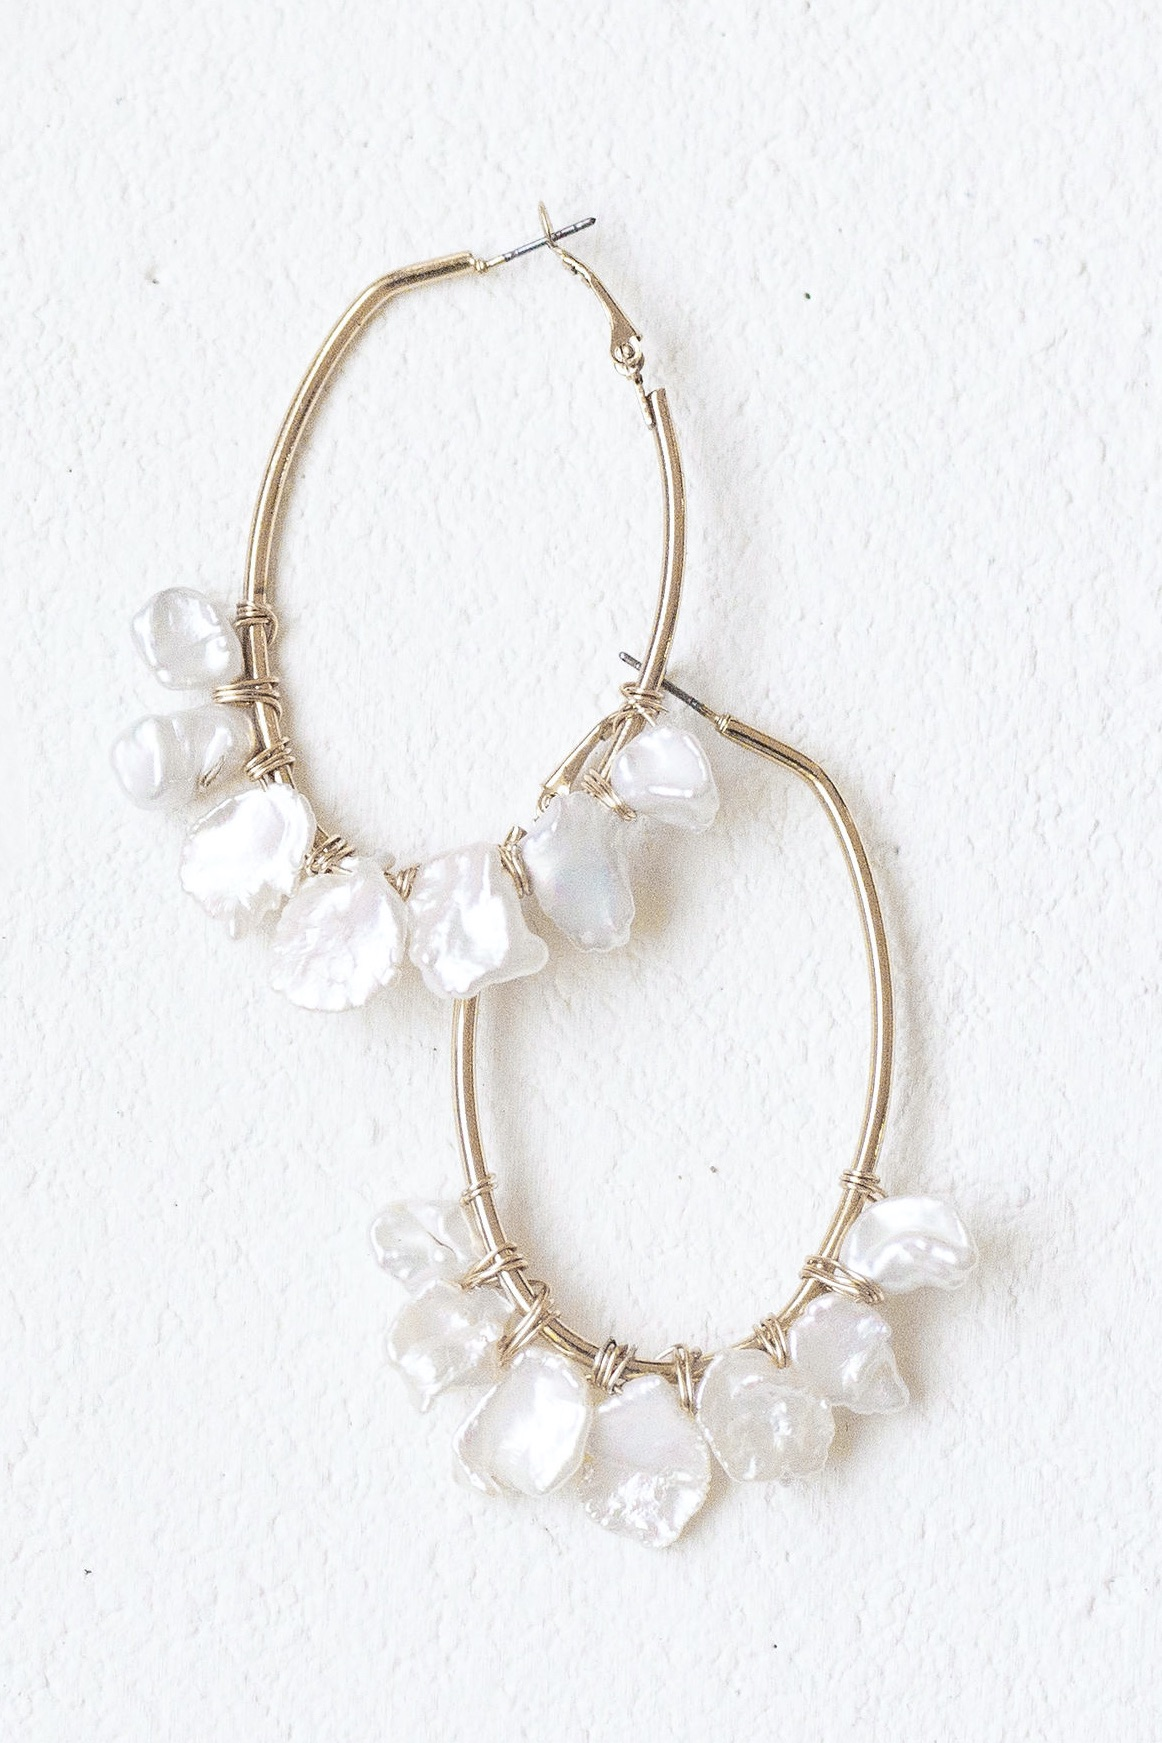 [SELL]A.B.ELLIE[Freshwater Pearl Oblong Hoops]